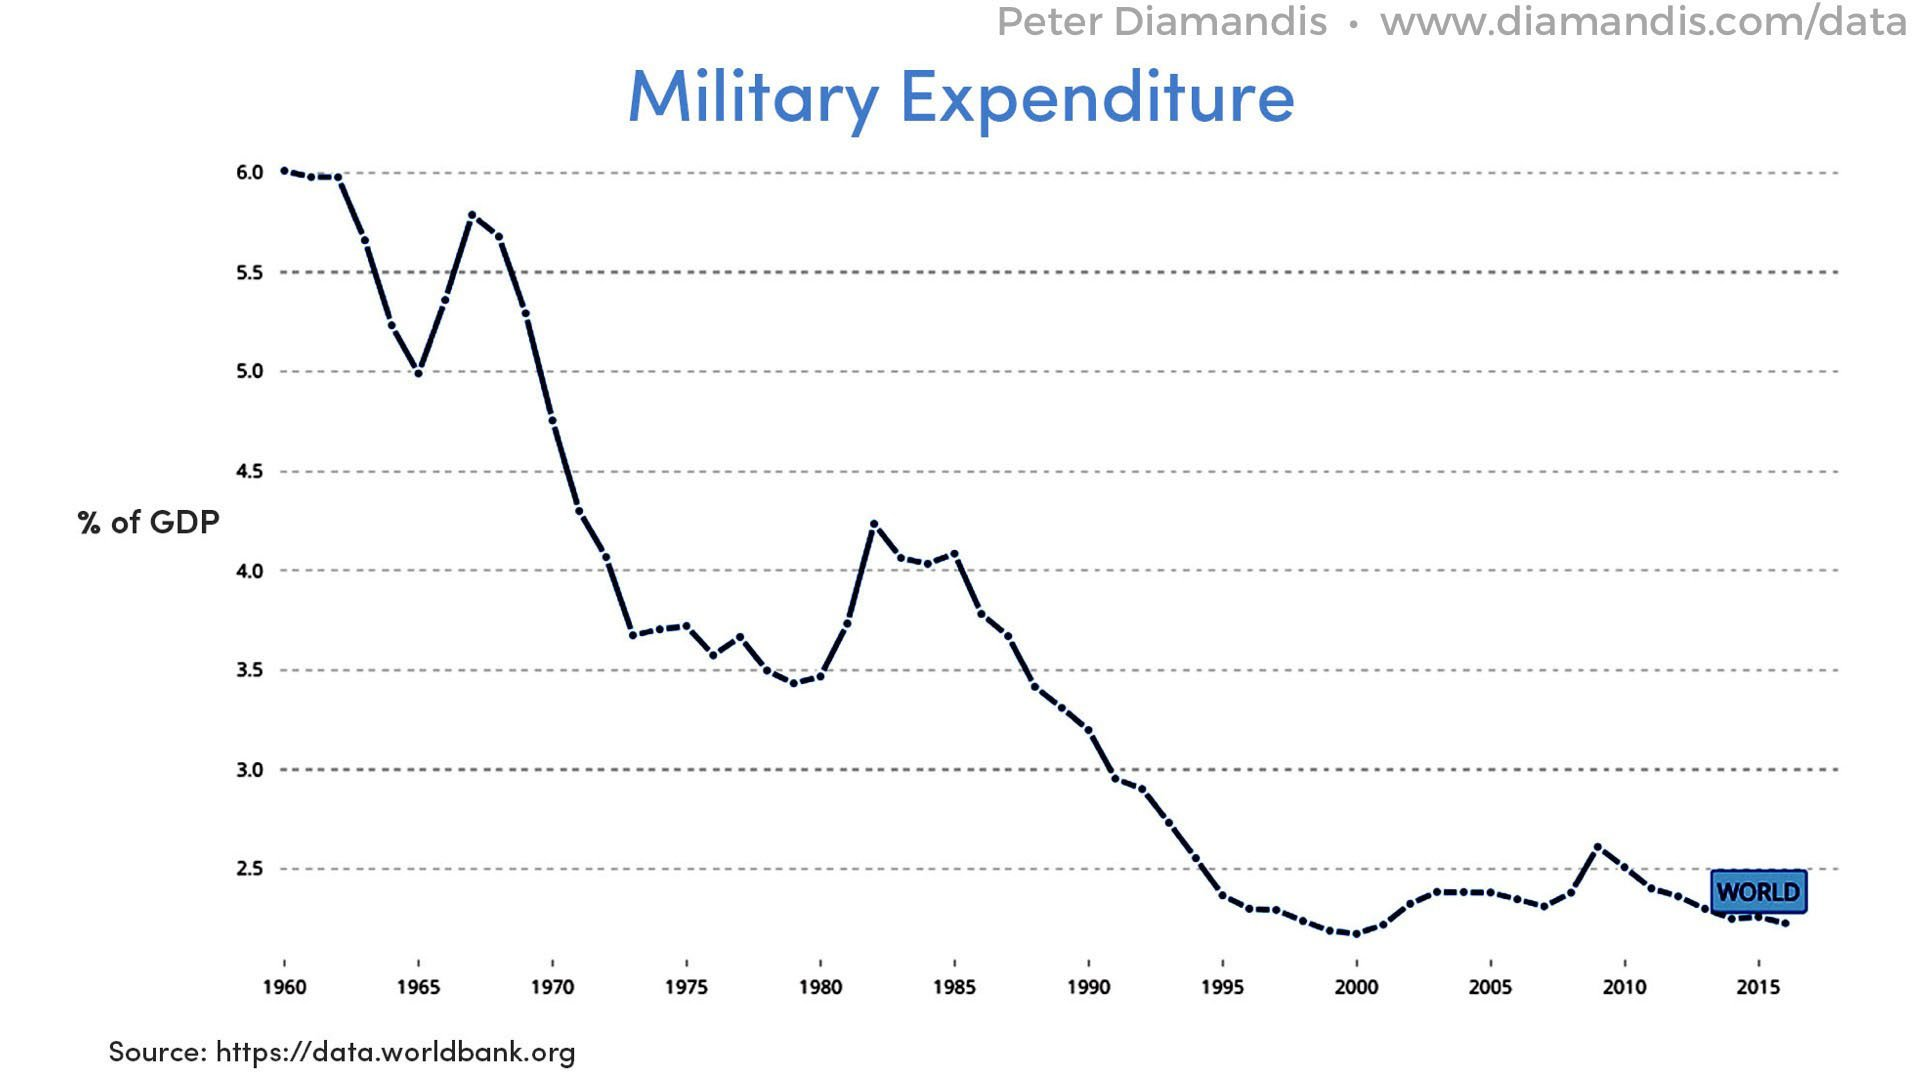 Military%20Expenditure%20(%25%20of%20GDP)